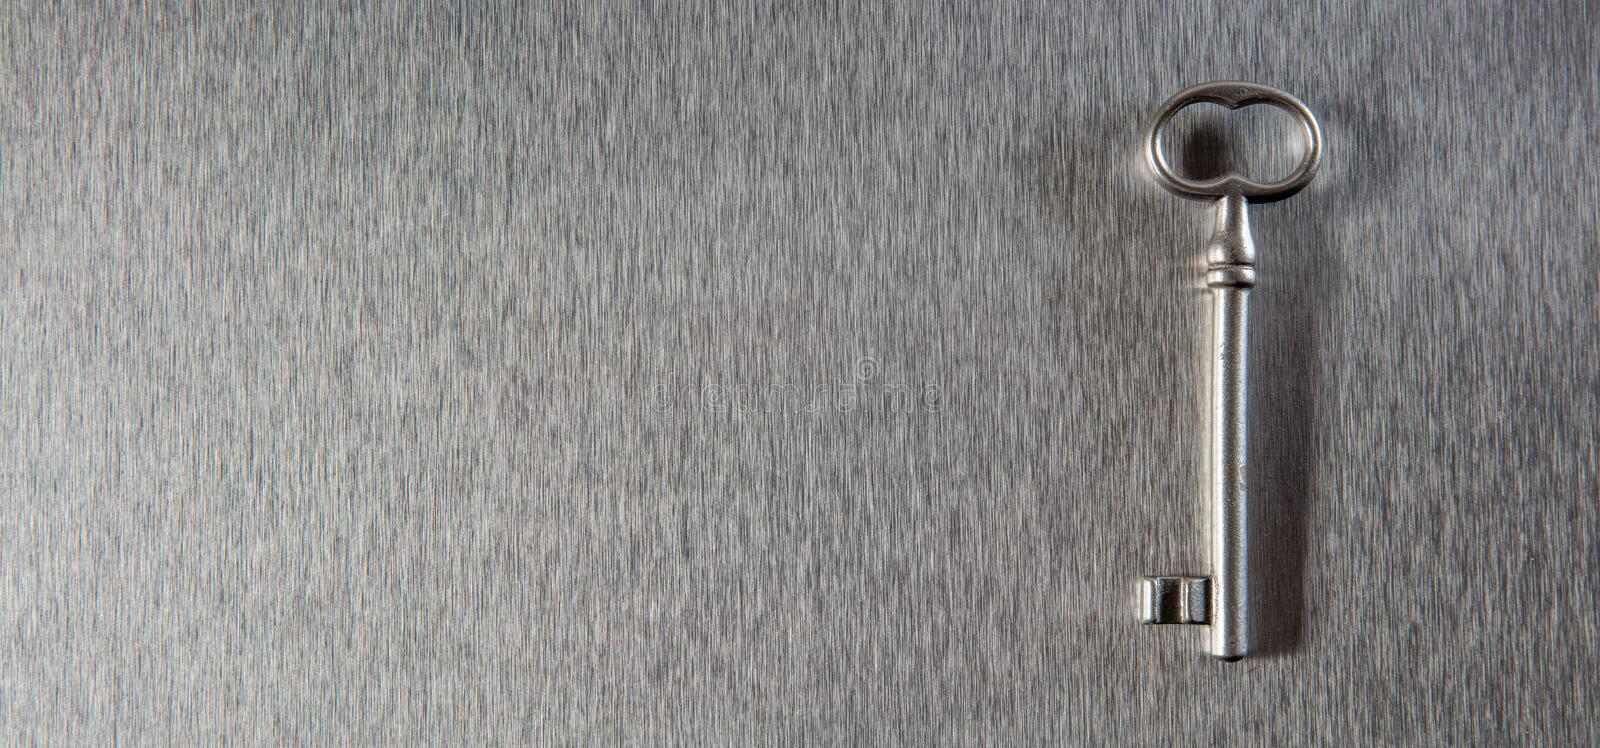 Key to safe business solution or property access, copy space. One old key on empty stainless steel background for symbol of safe business solution, investing in royalty free stock images